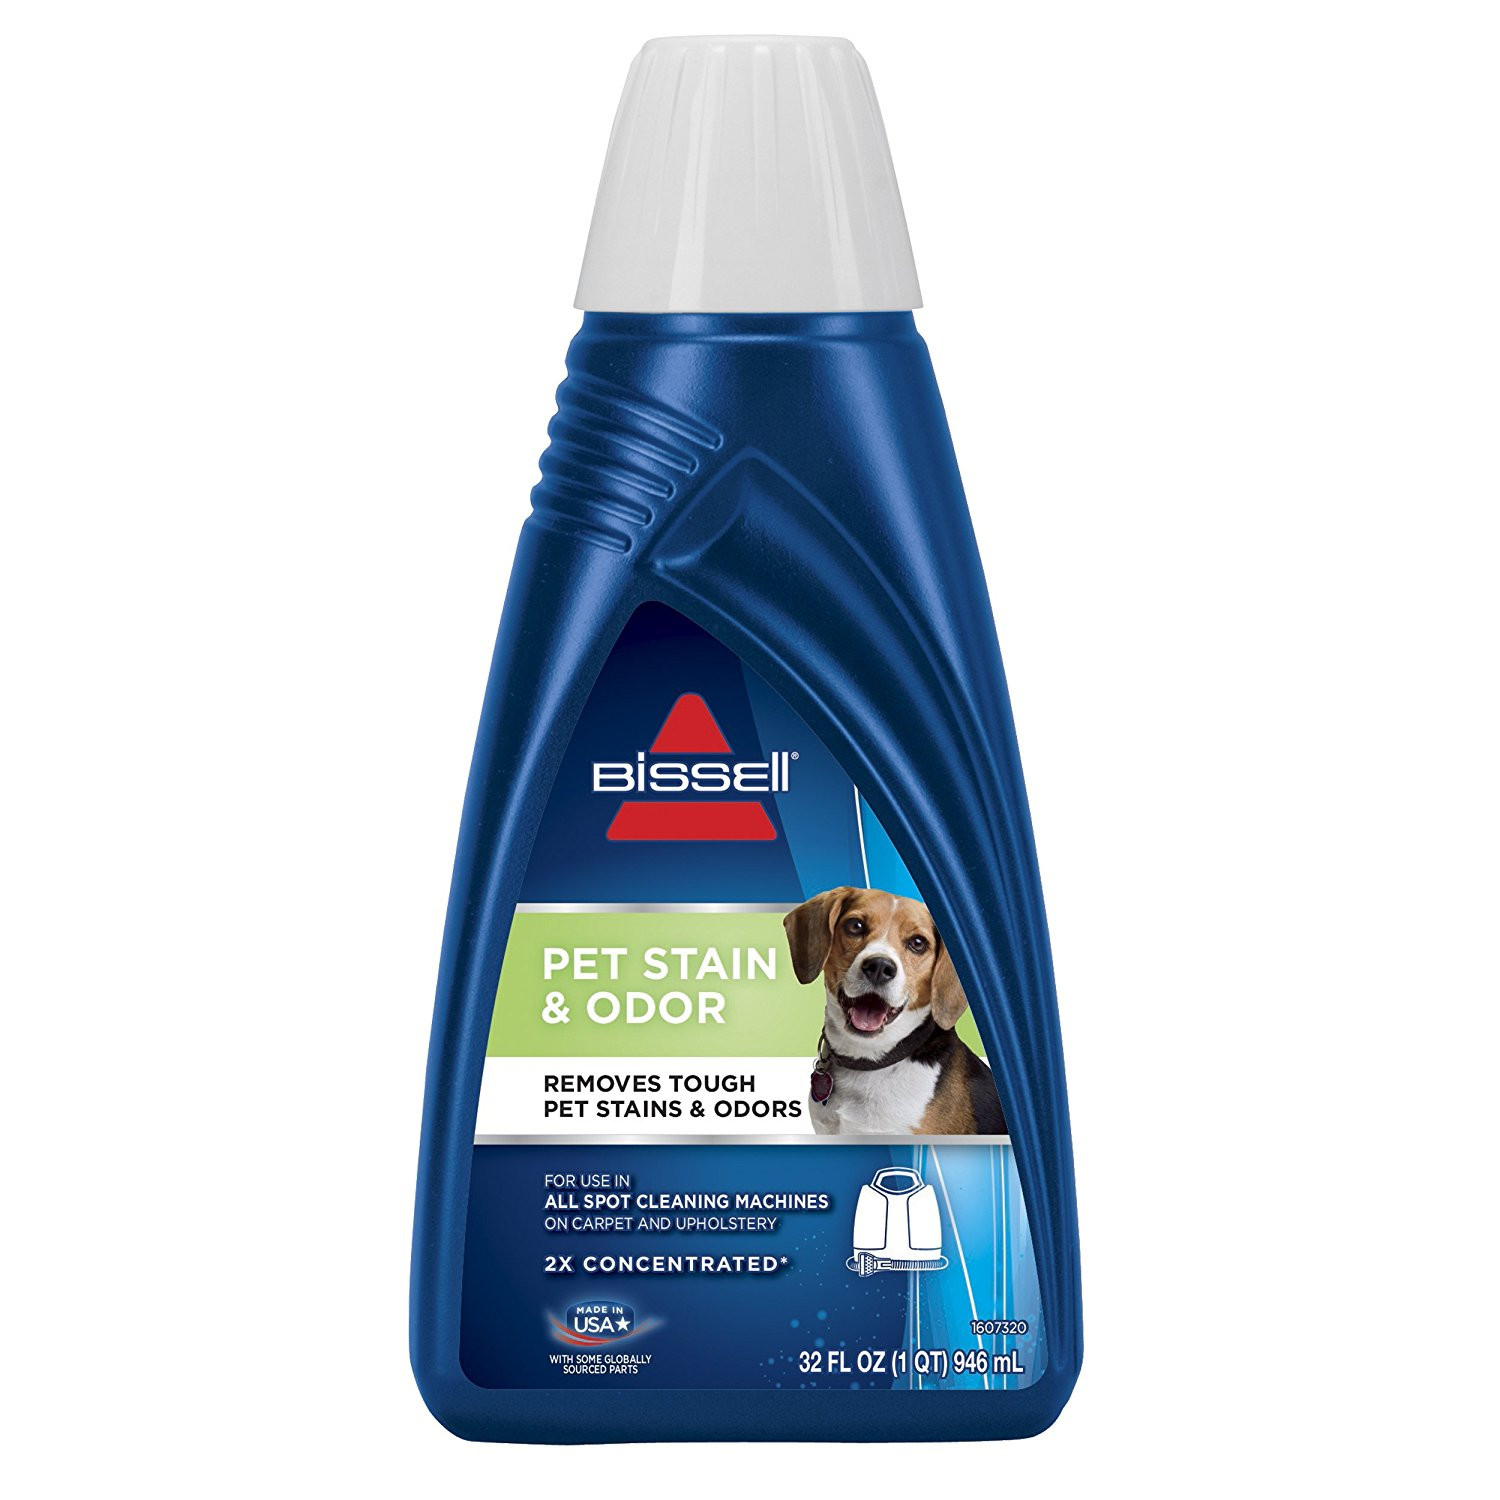 hardwood floor cleaner for pets of amazon com bissell 2x pet stain odor portable machine formula 32 in amazon com bissell 2x pet stain odor portable machine formula 32 ounces 74r7 home kitchen